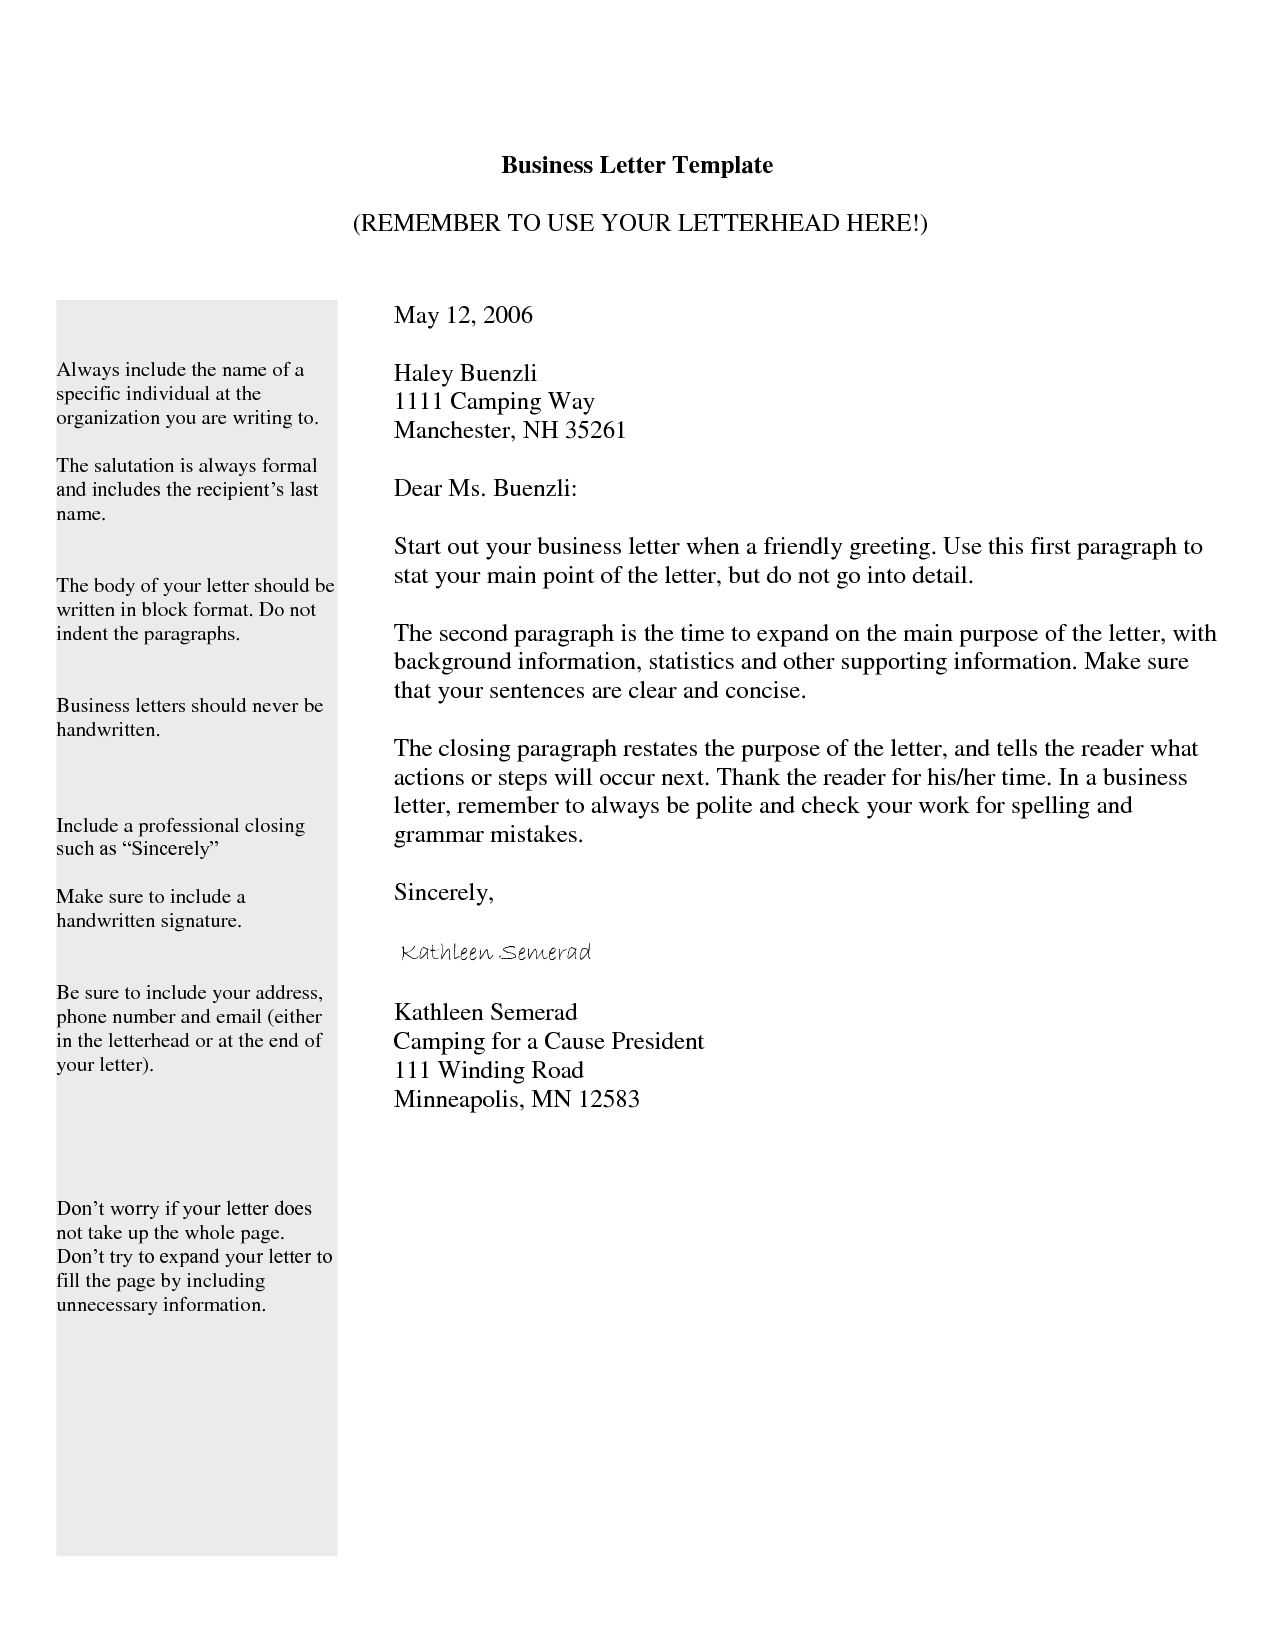 Tips How Write The Professional Business Letter Template